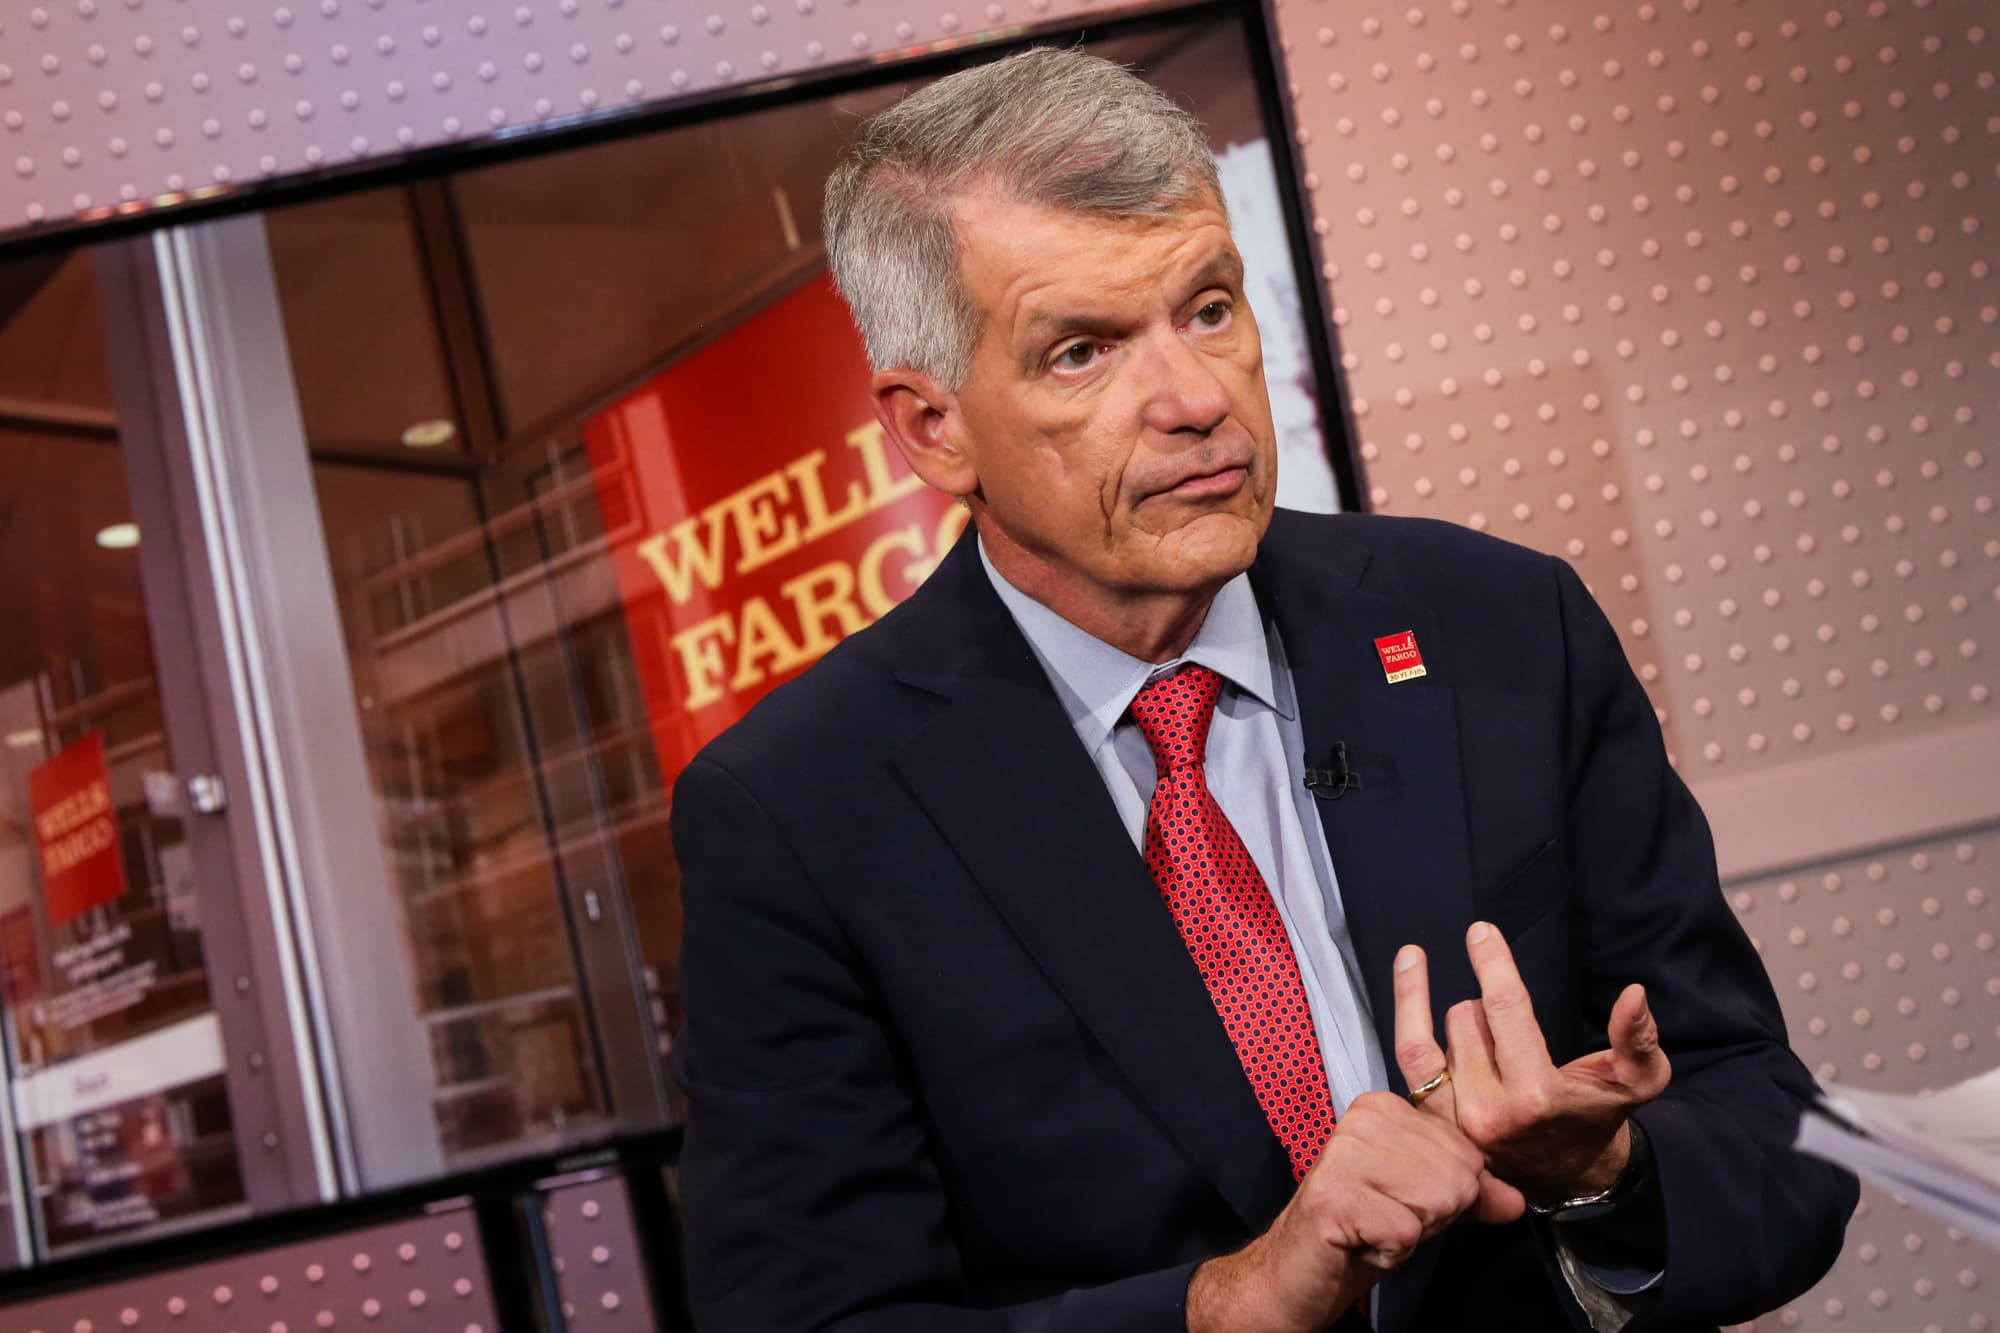 Wells Fargo CEO on helping customers affected by government shutdown